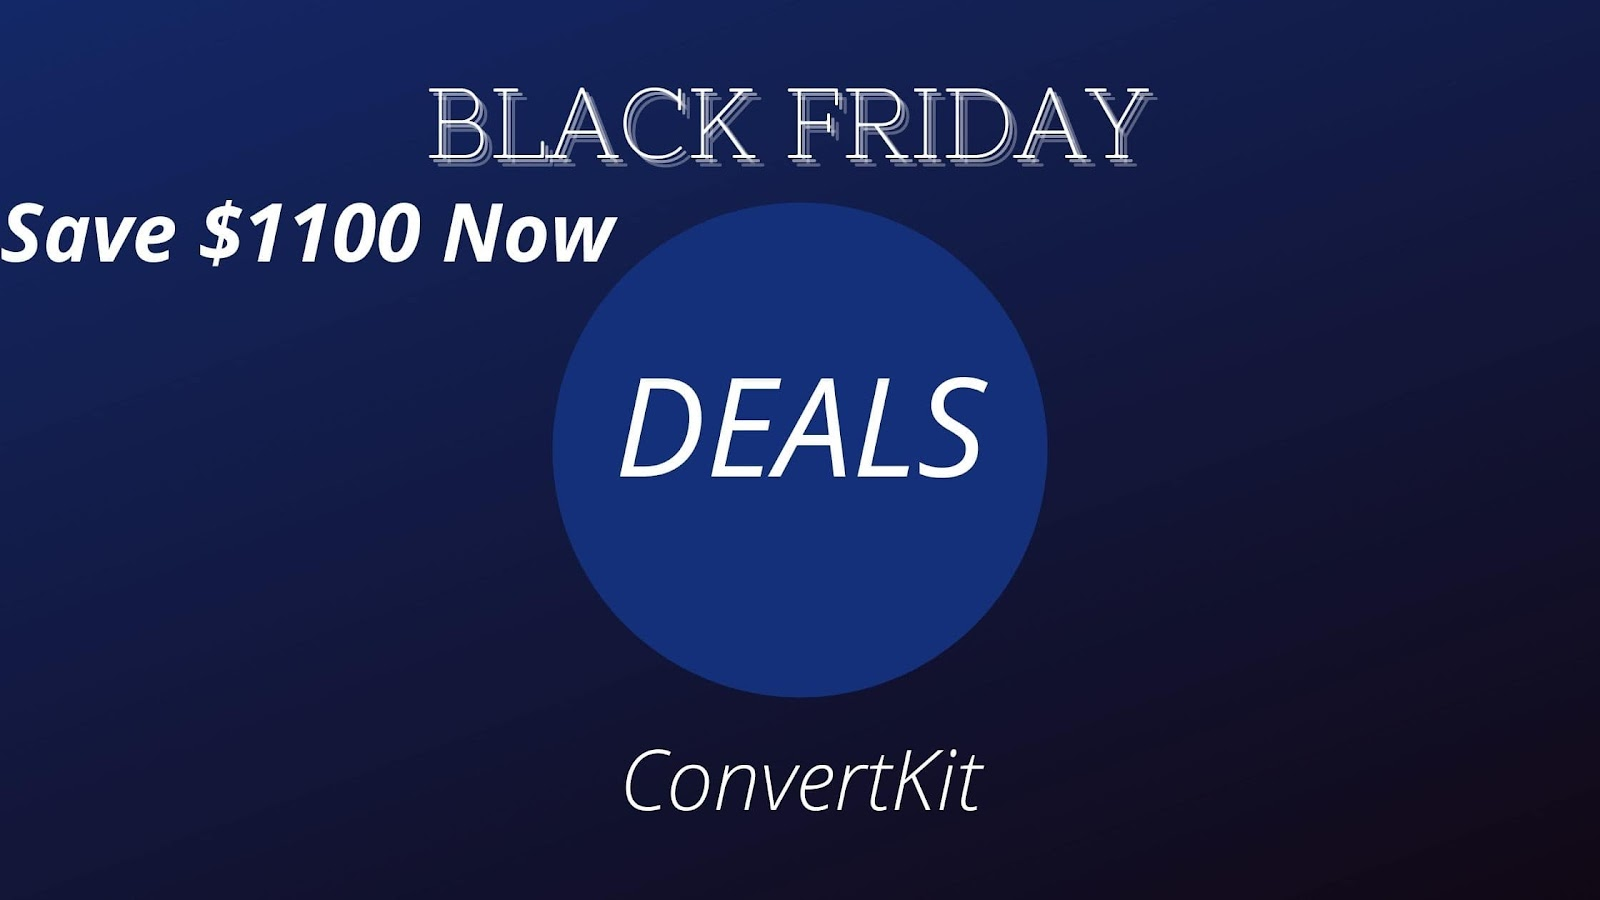 ConvertKit: Save $1100 NOW